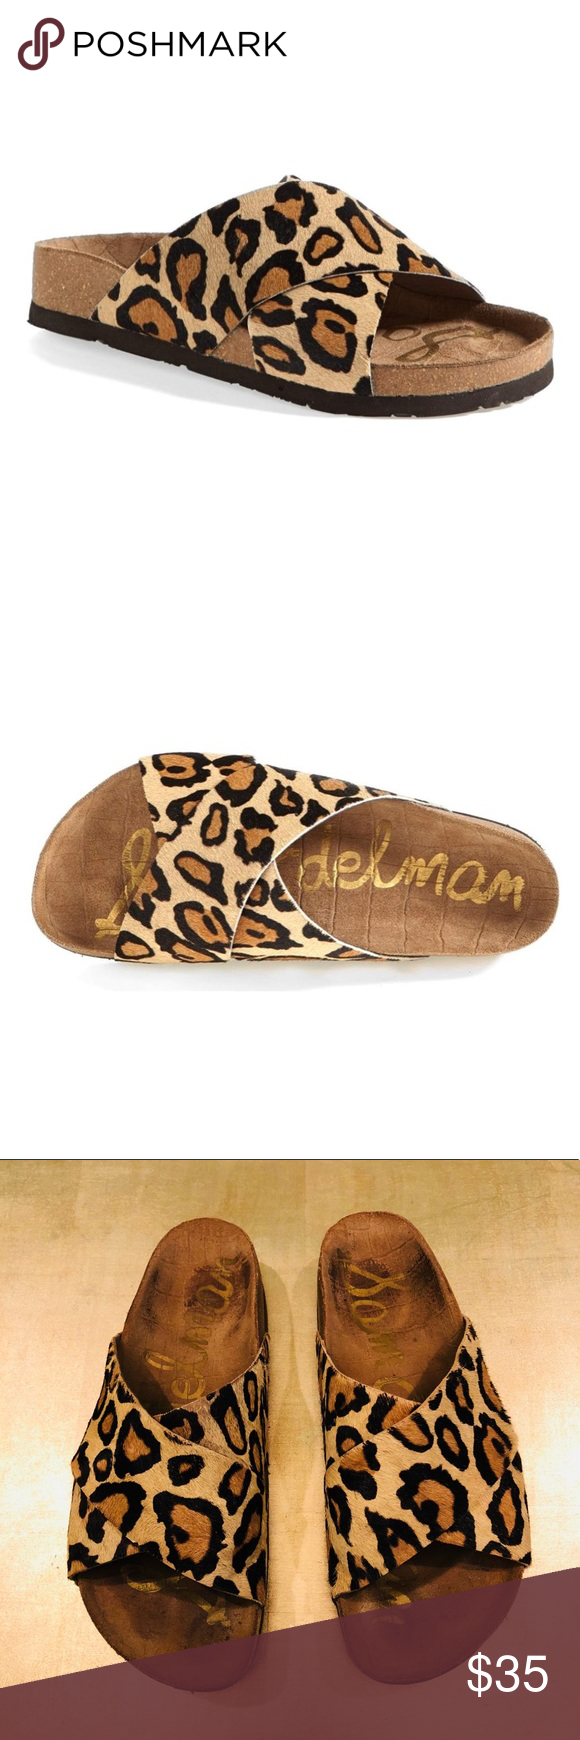 581ab822921246 Sam Edelman Leopard Brahma Adora Sandal Bold crossover straps a playful  slide sandal with a sturdy rubber sole. This shoe runs small. I normally  wear a 5.5.